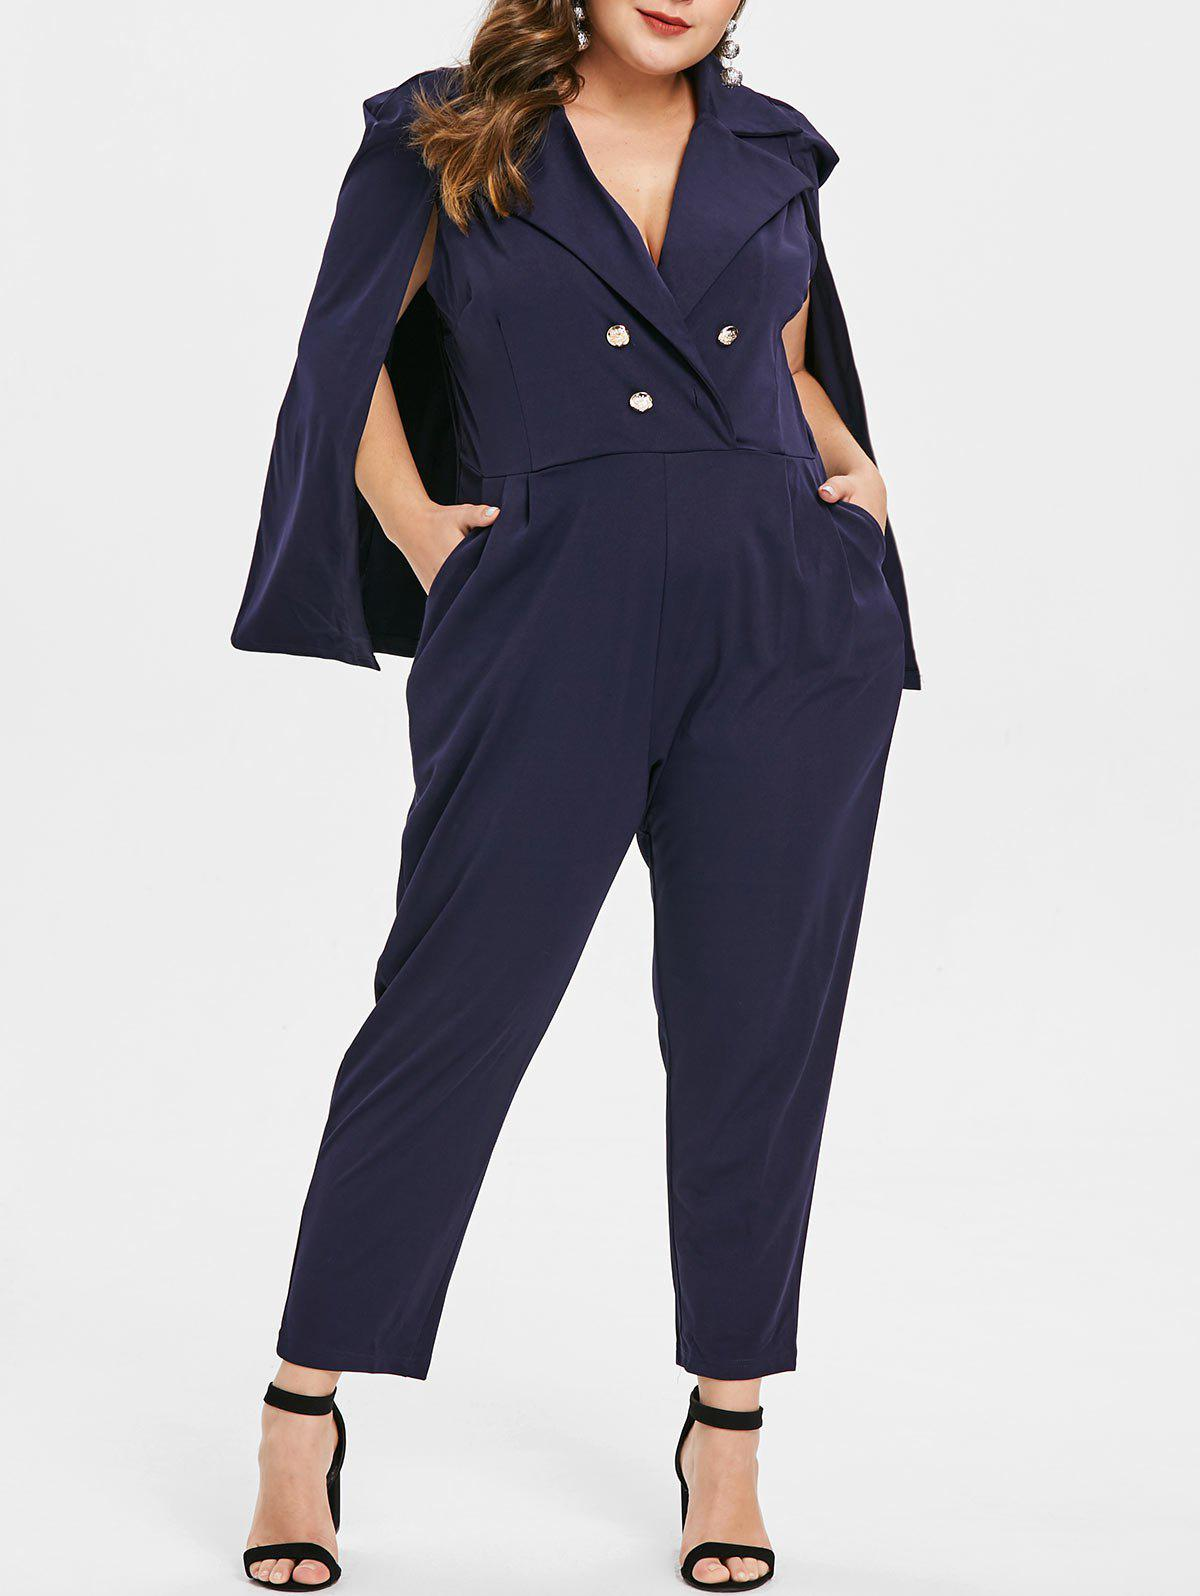 cbc21c25653 2019 Plus Size High Waisted Cape Jumpsuit With Buttons